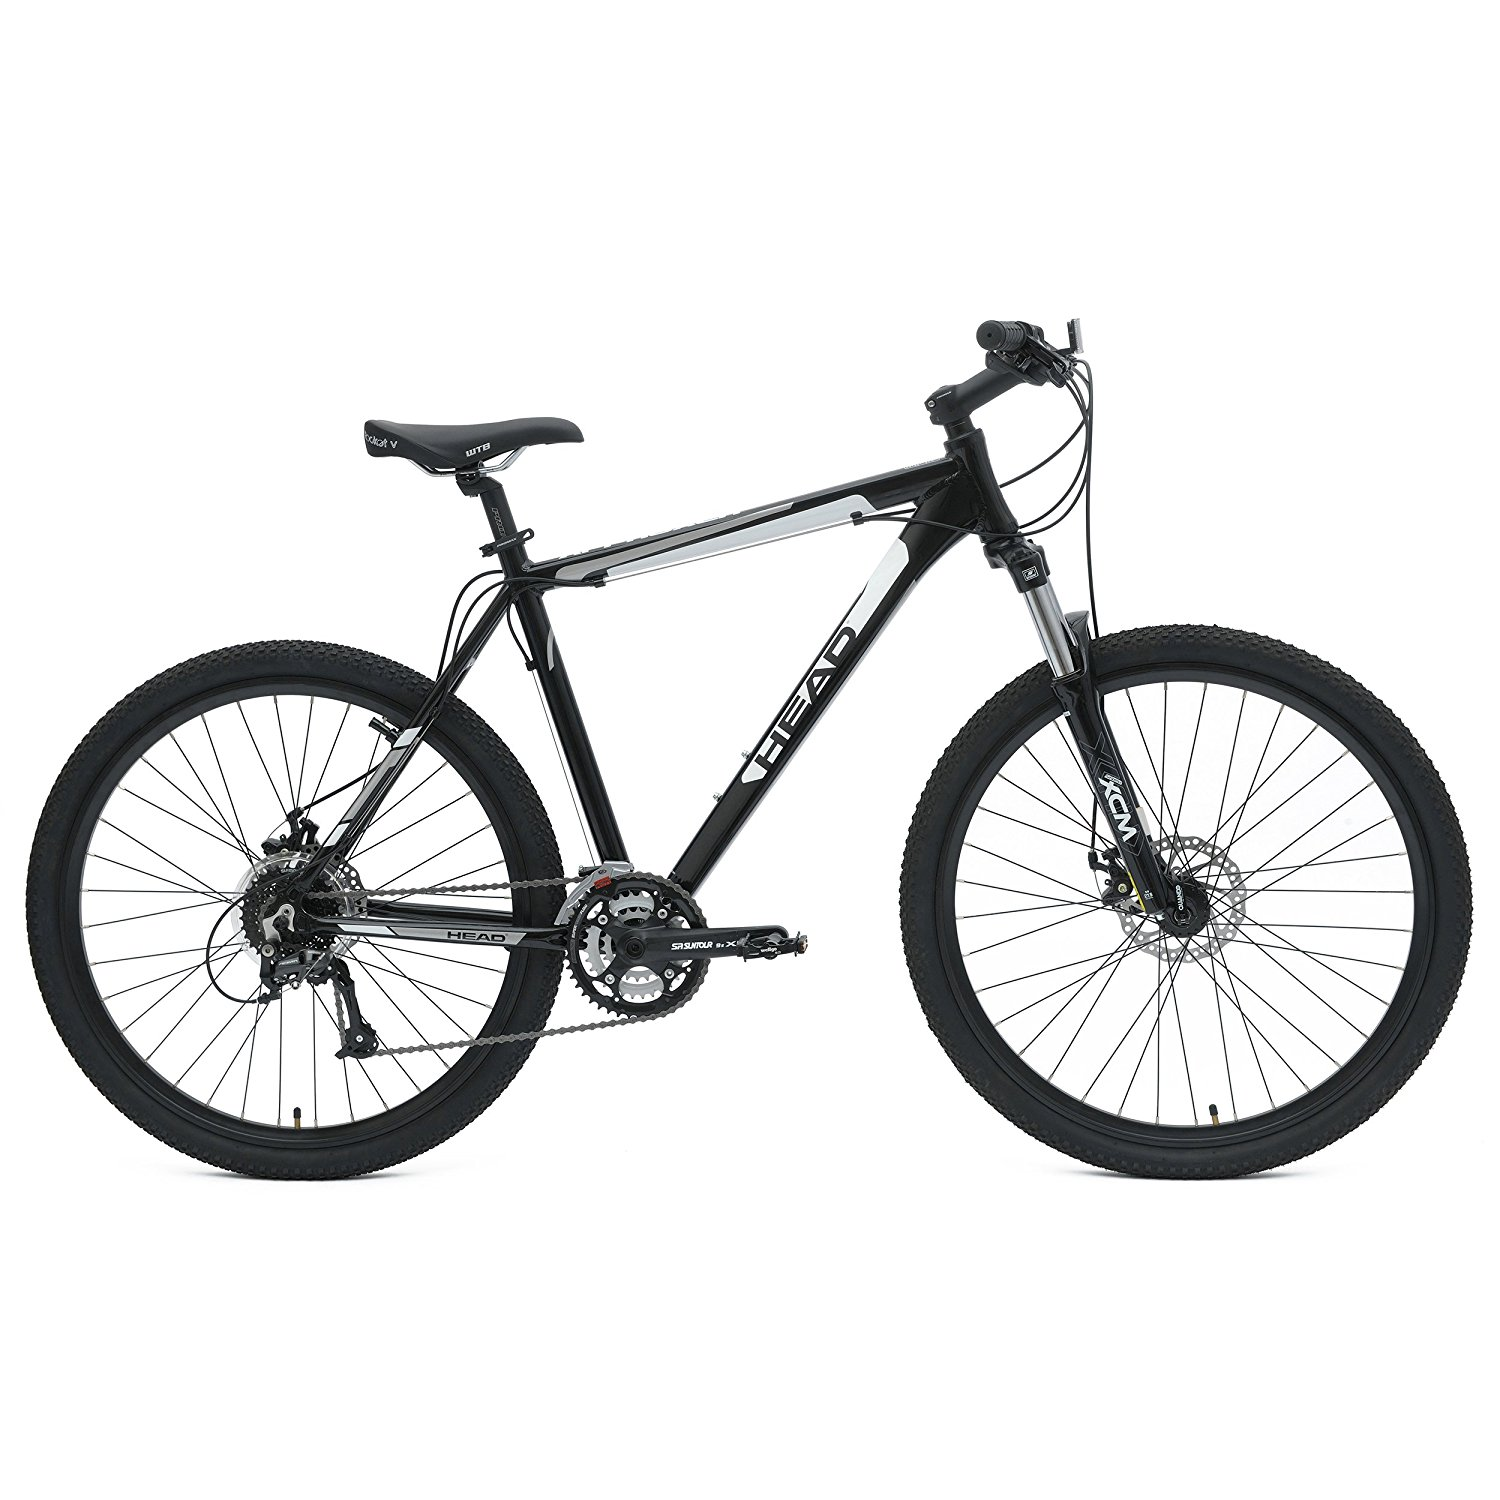 Head NX Series Hardtail Mountain Bike, 29 or 27.5 inch Wheels